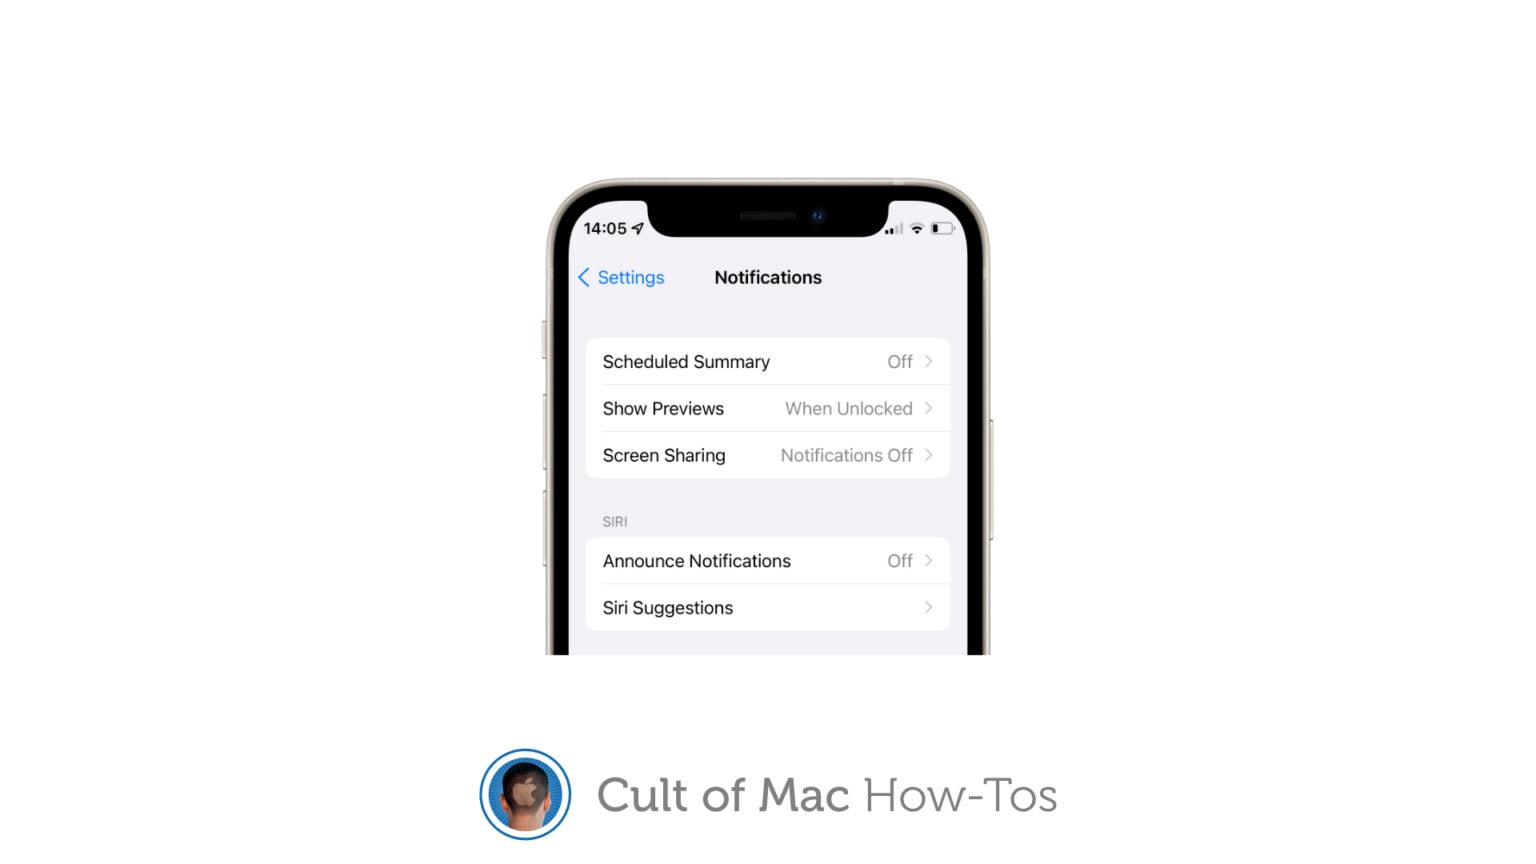 Disable notifications while screen sharing